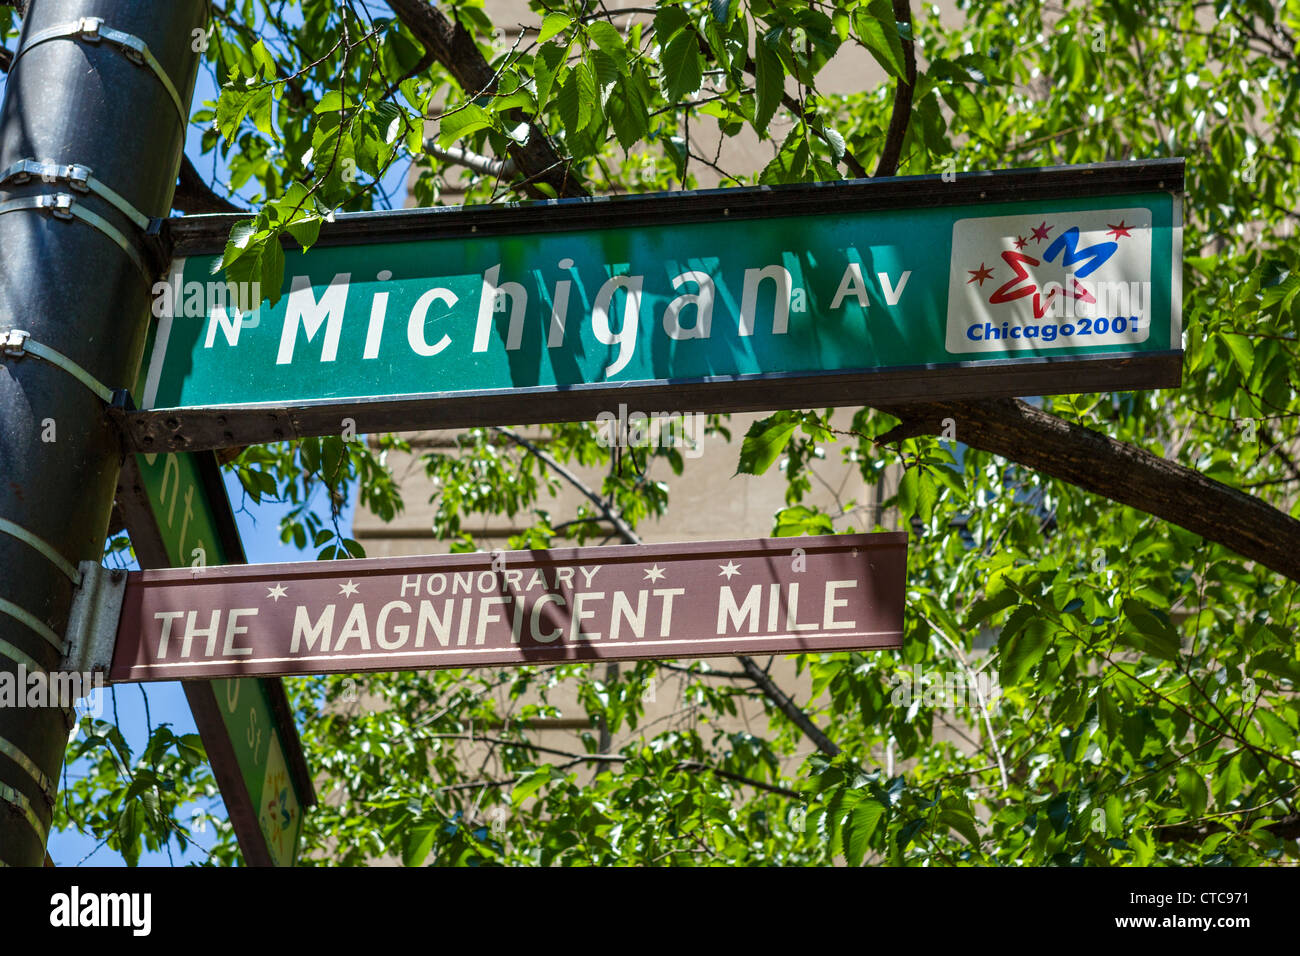 Magnificent Mile street sign, Michigan Avenue, Chicago, Illinois, USA - Stock Image